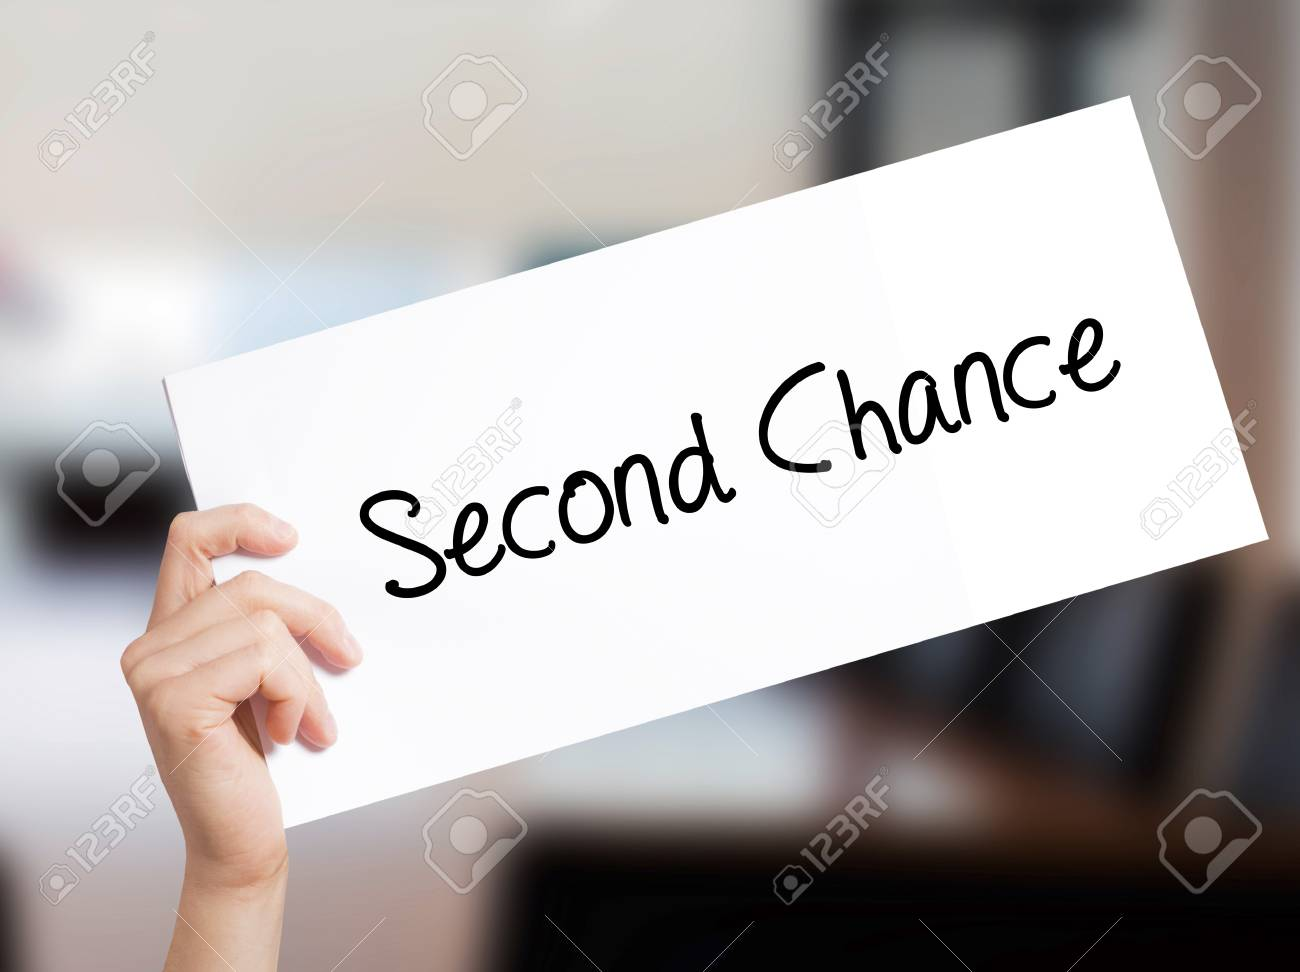 Second Chance Sign on white paper  Man Hand Holding Paper with